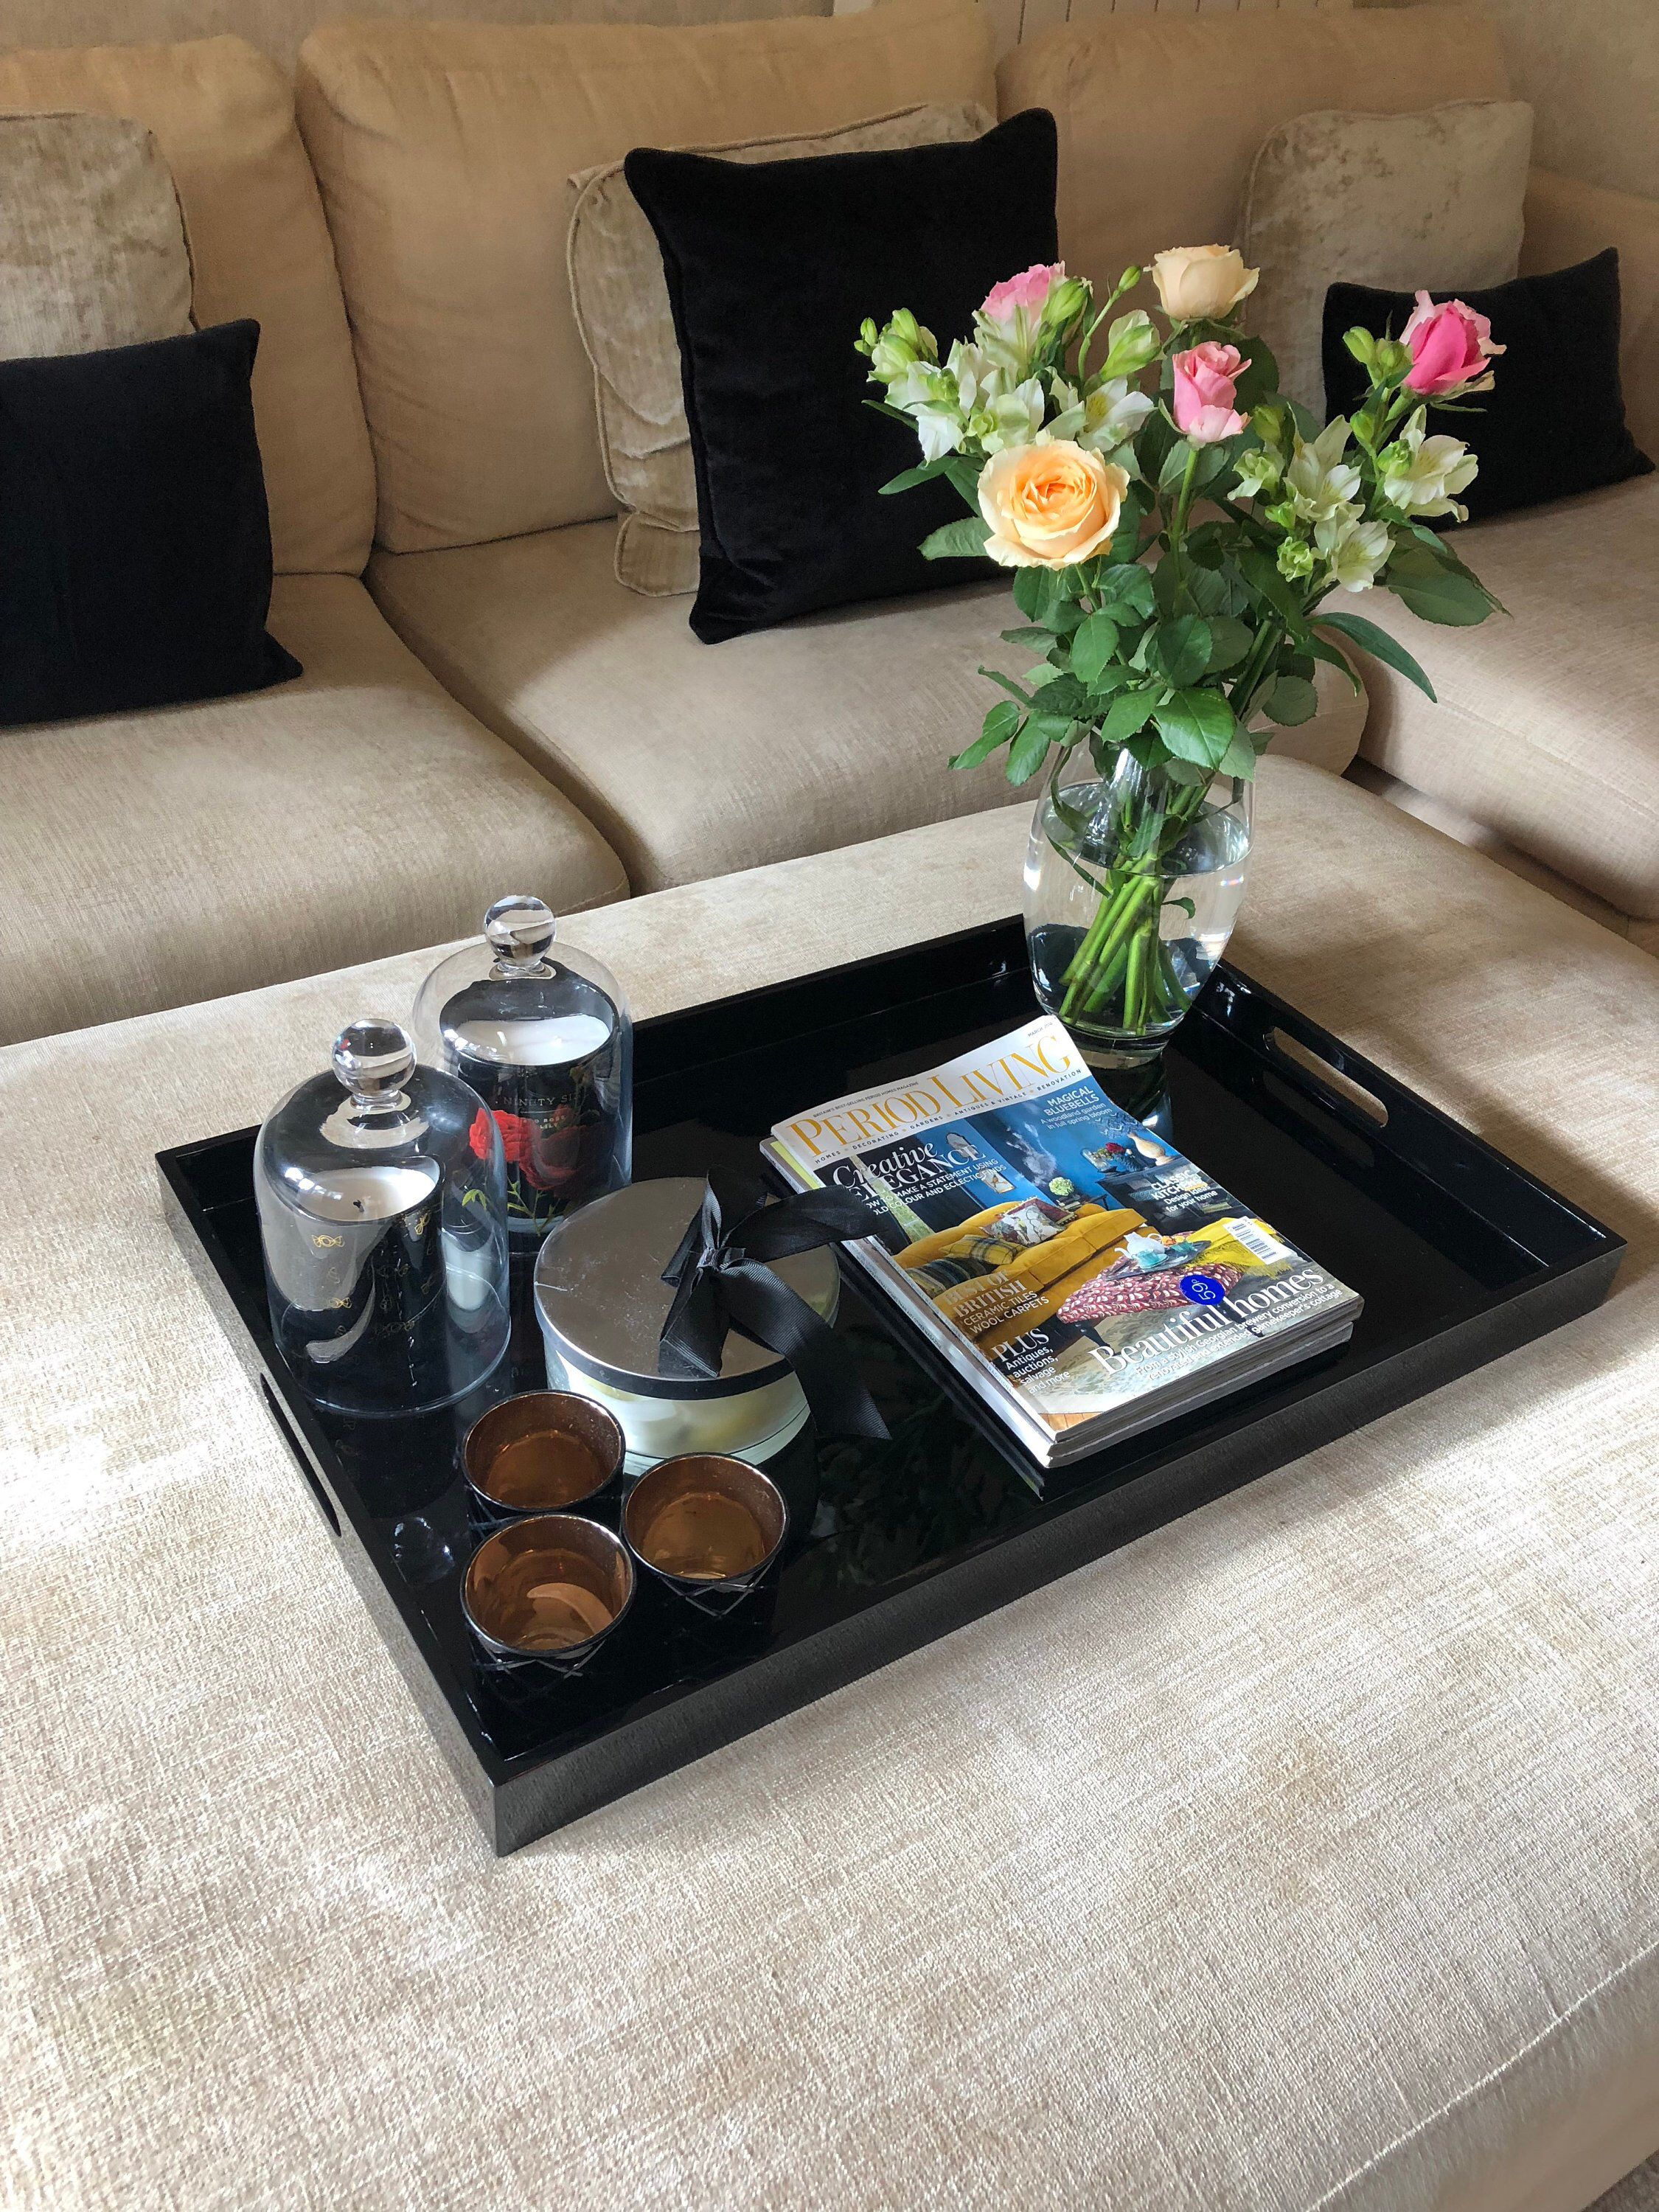 Large Black Gloss Lacquered Rectangular Ottoman Tray Coffee Etsy Ottoman Tray Coffee Table Tray Tray